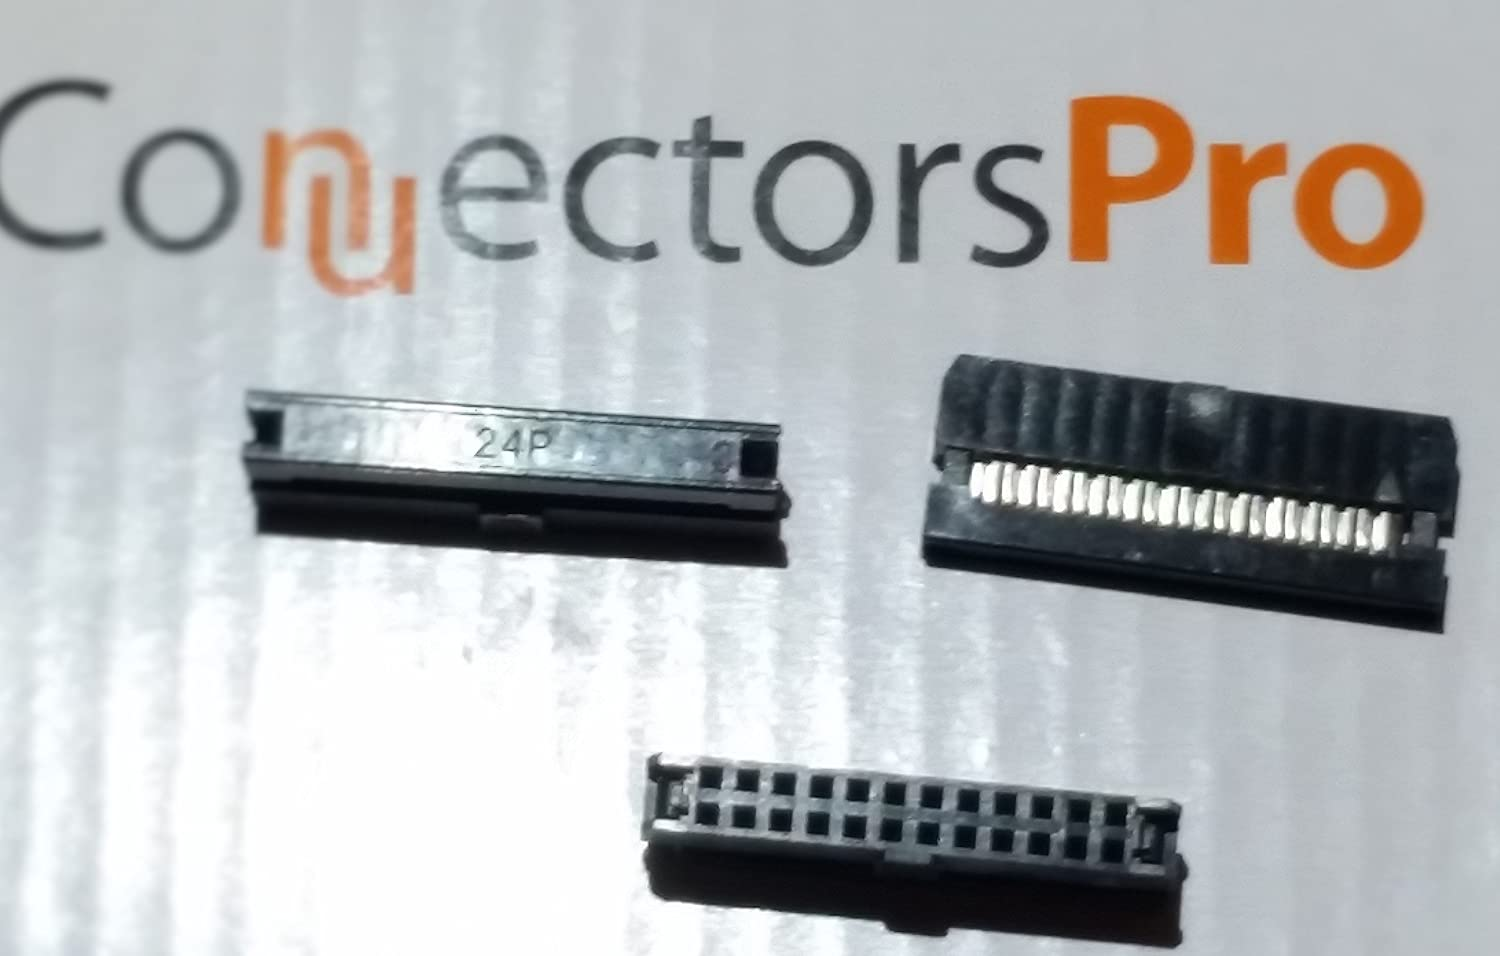 Pc Accessories Connectors Pro 20-PK 2X12 24P 2mm 0.079 Pitch Dual Row IDC Socket 24 Pins 2.0mm FC Terminate to 1.0mm Flat Ribbon Cable Marvic International Inc IDC-2MM-24P-20PK